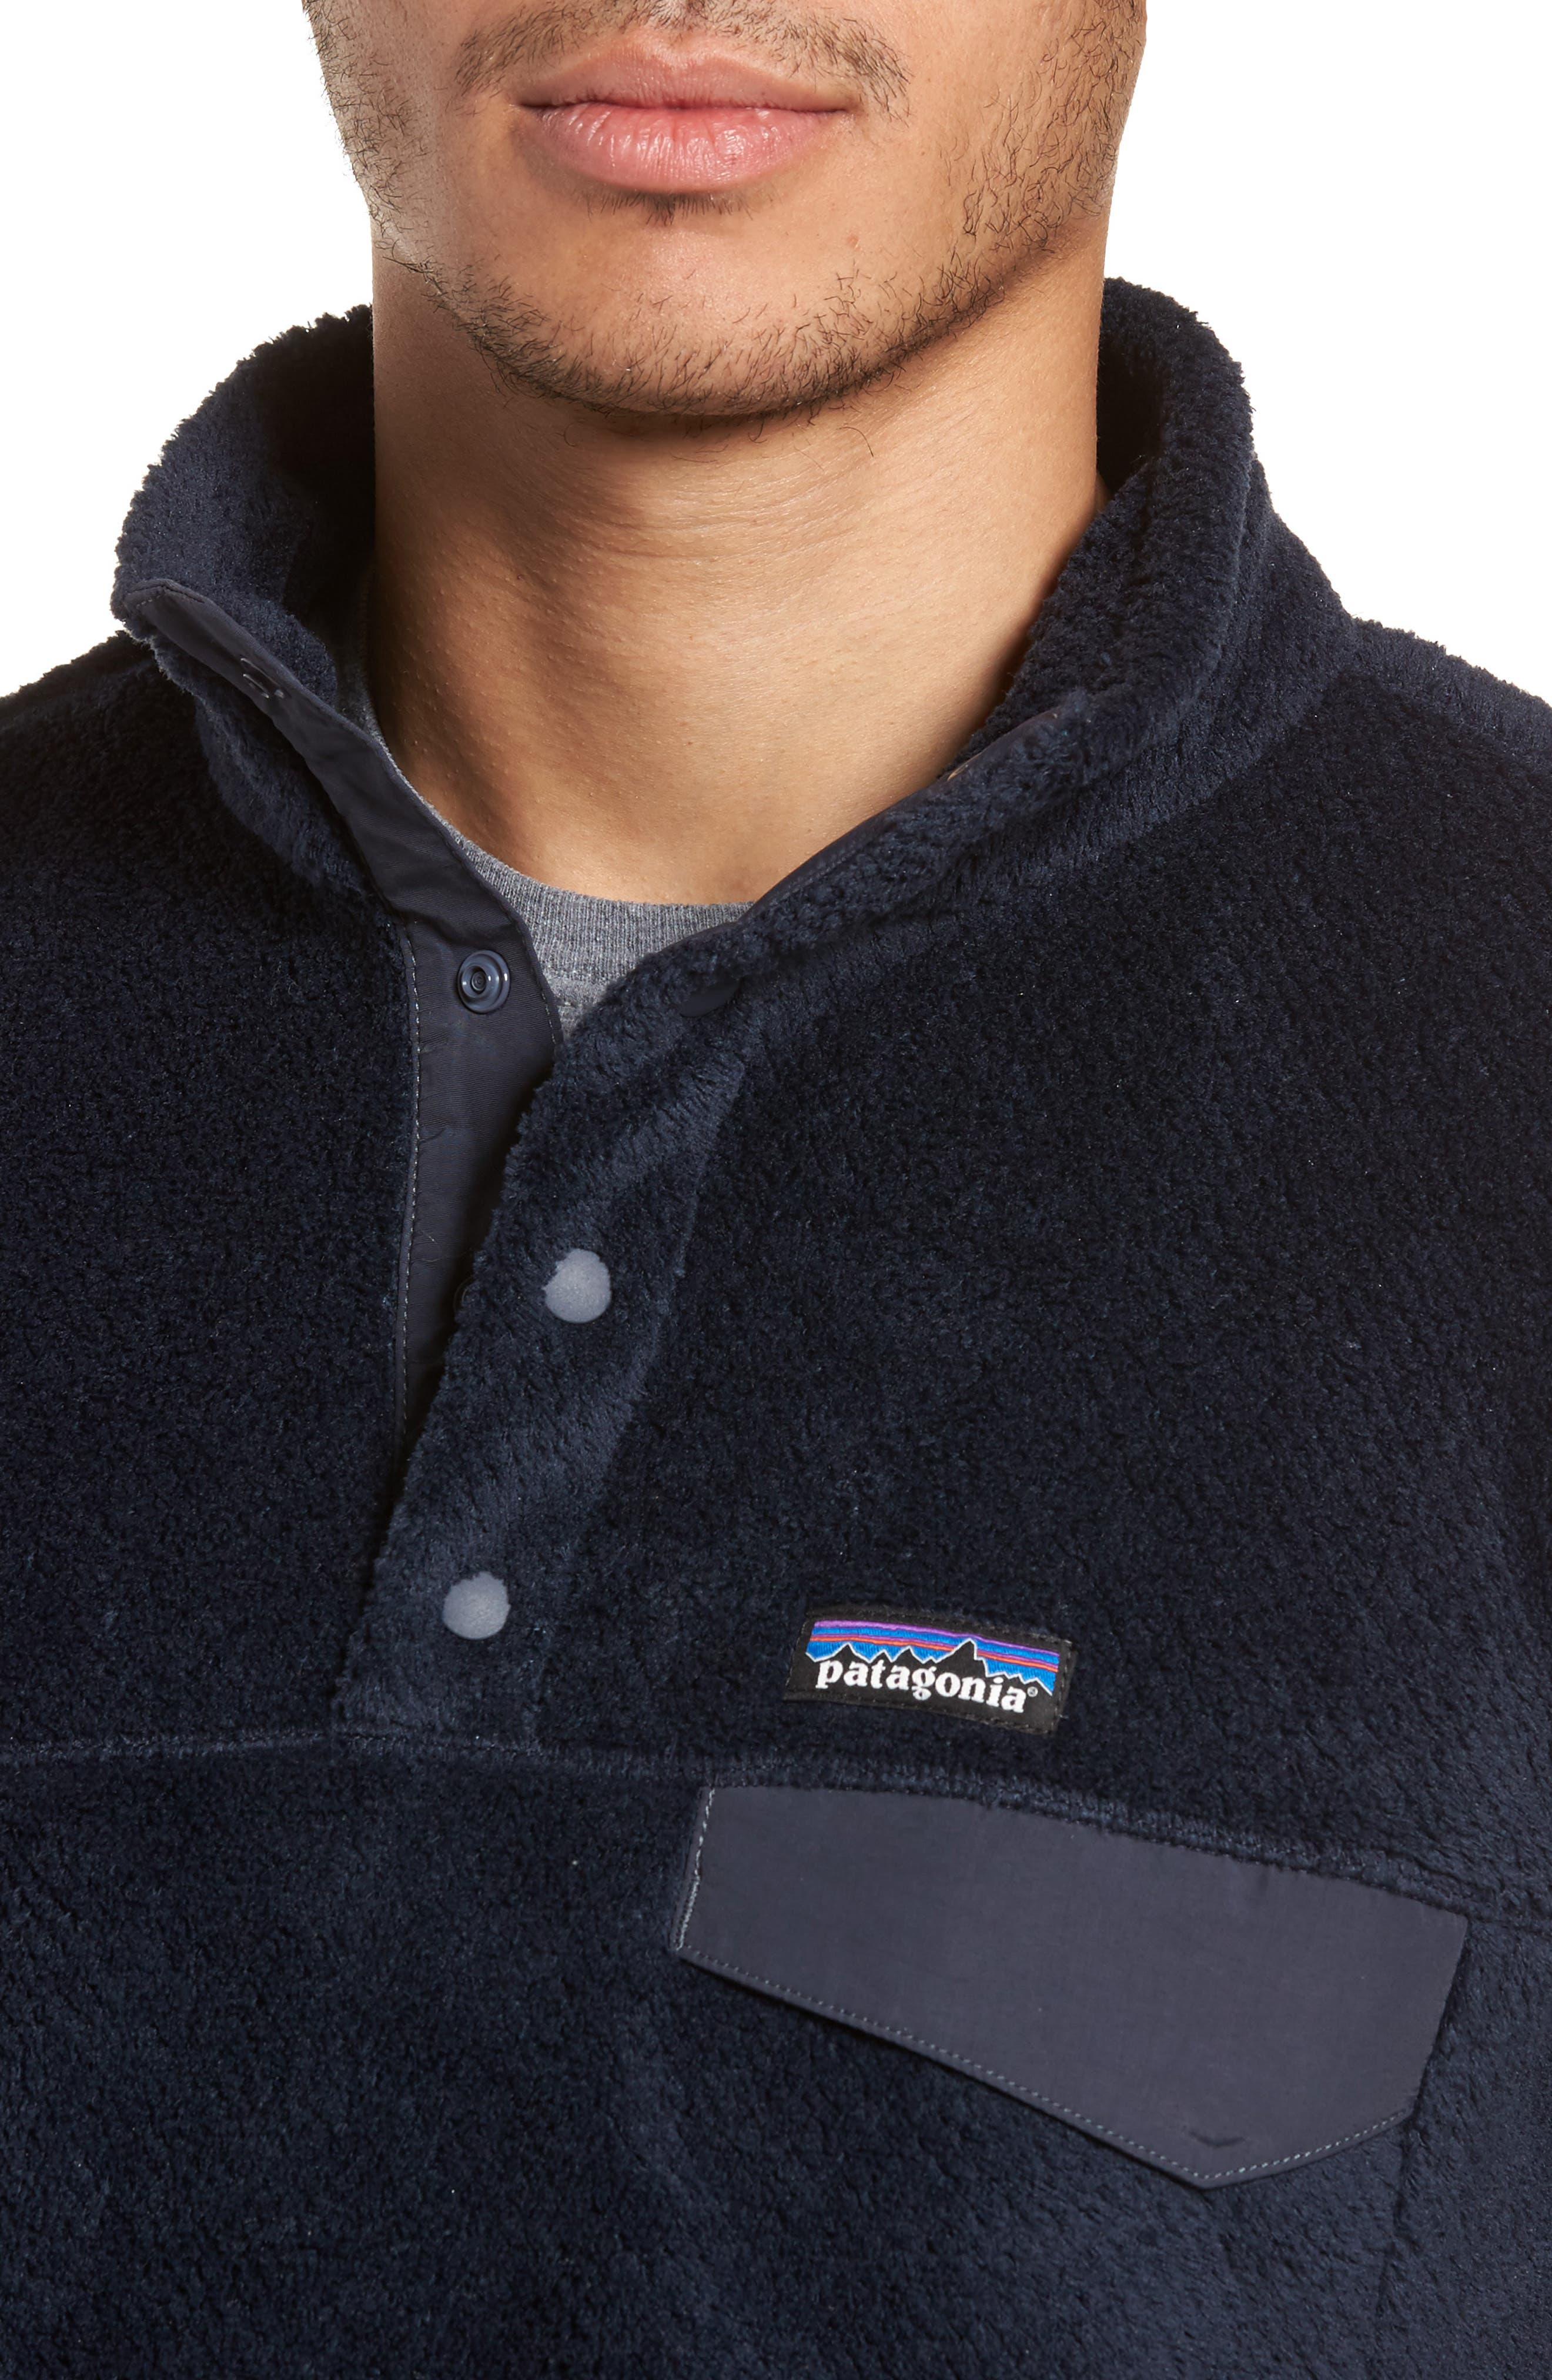 Re-Tool Snap-T<sup>®</sup> Pullover,                             Alternate thumbnail 4, color,                             Navy Blue X-Dye